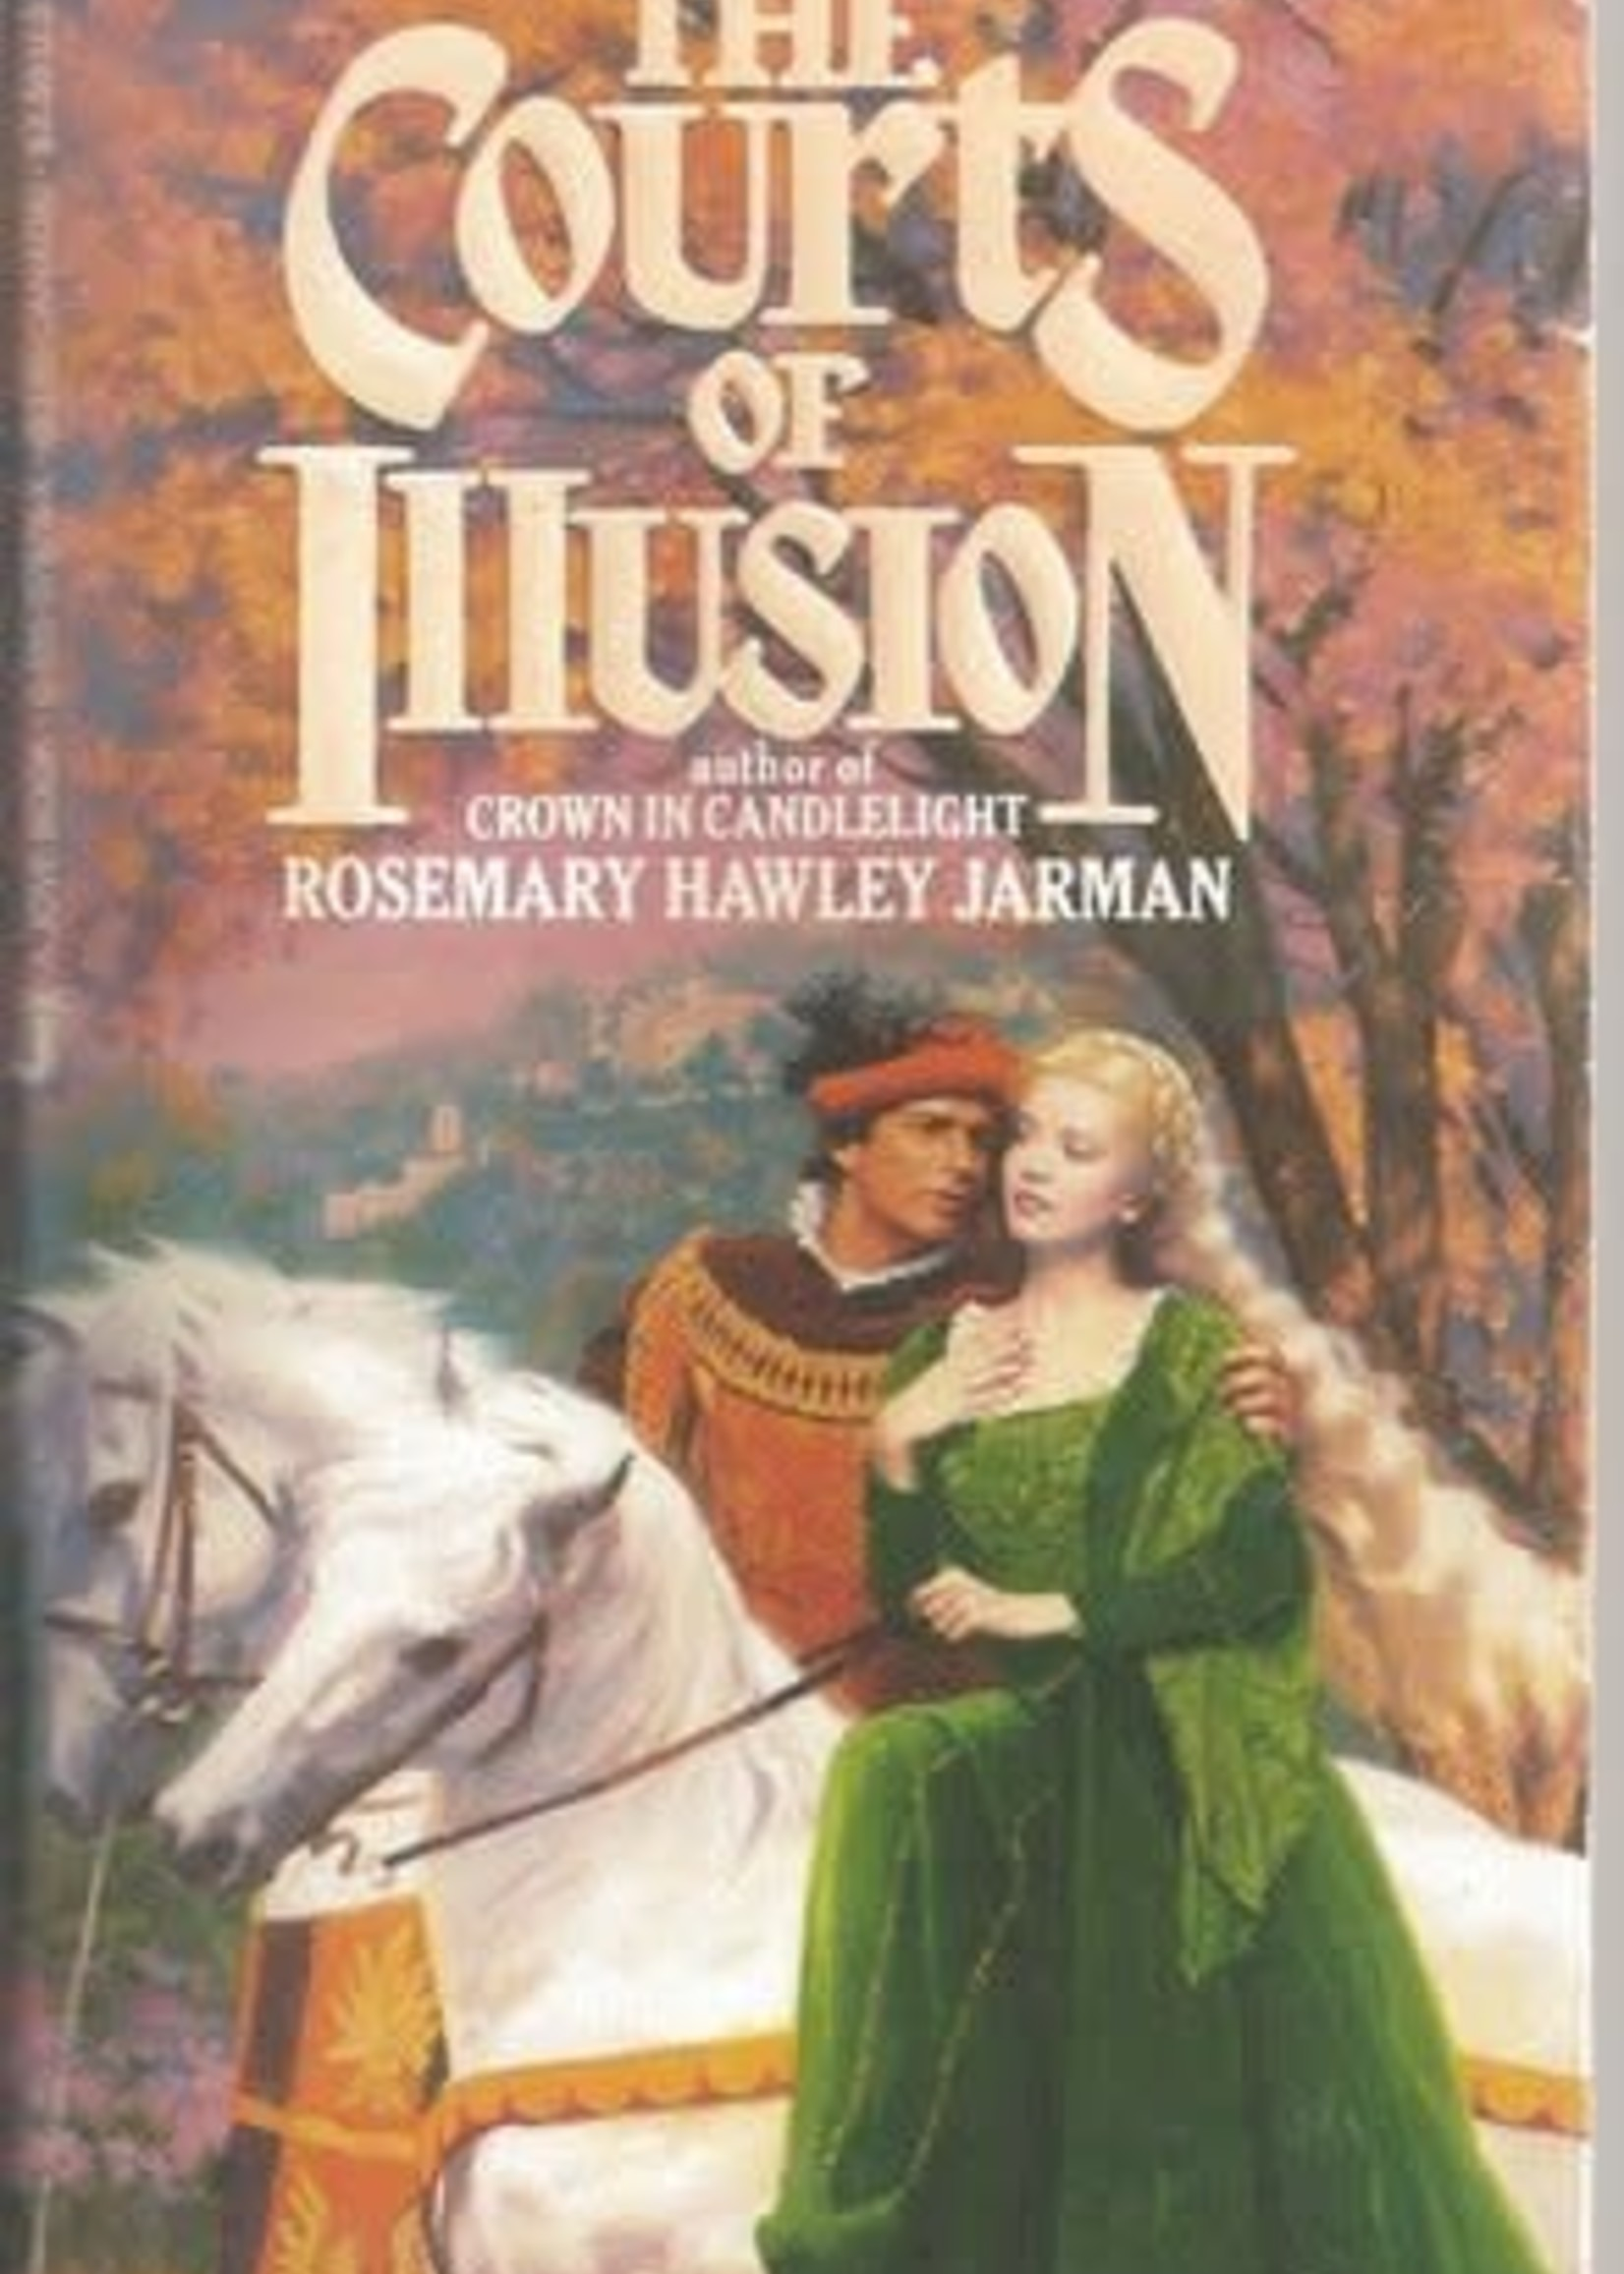 USED - The Courts of Illusion by Rosemary Hawley Jarman